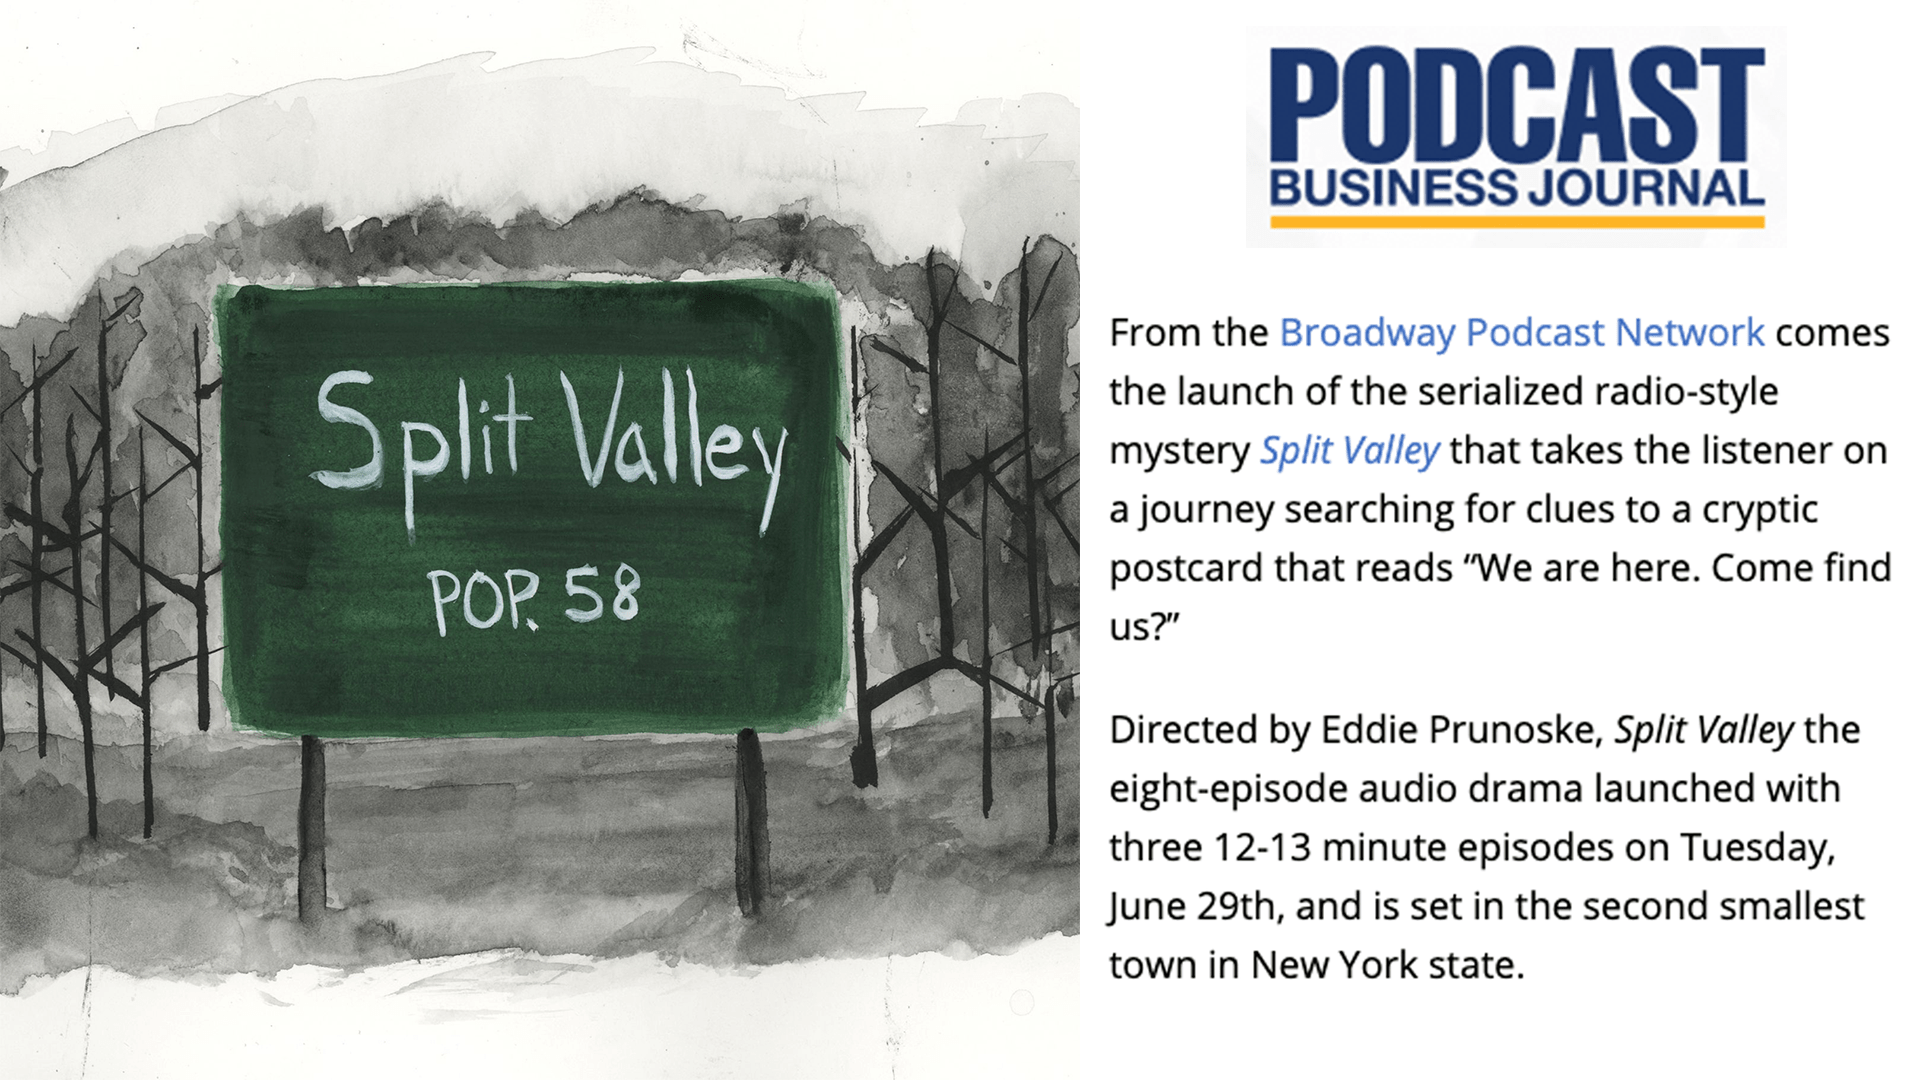 Split Valley's Launch Covered by the Podcast Business Journal